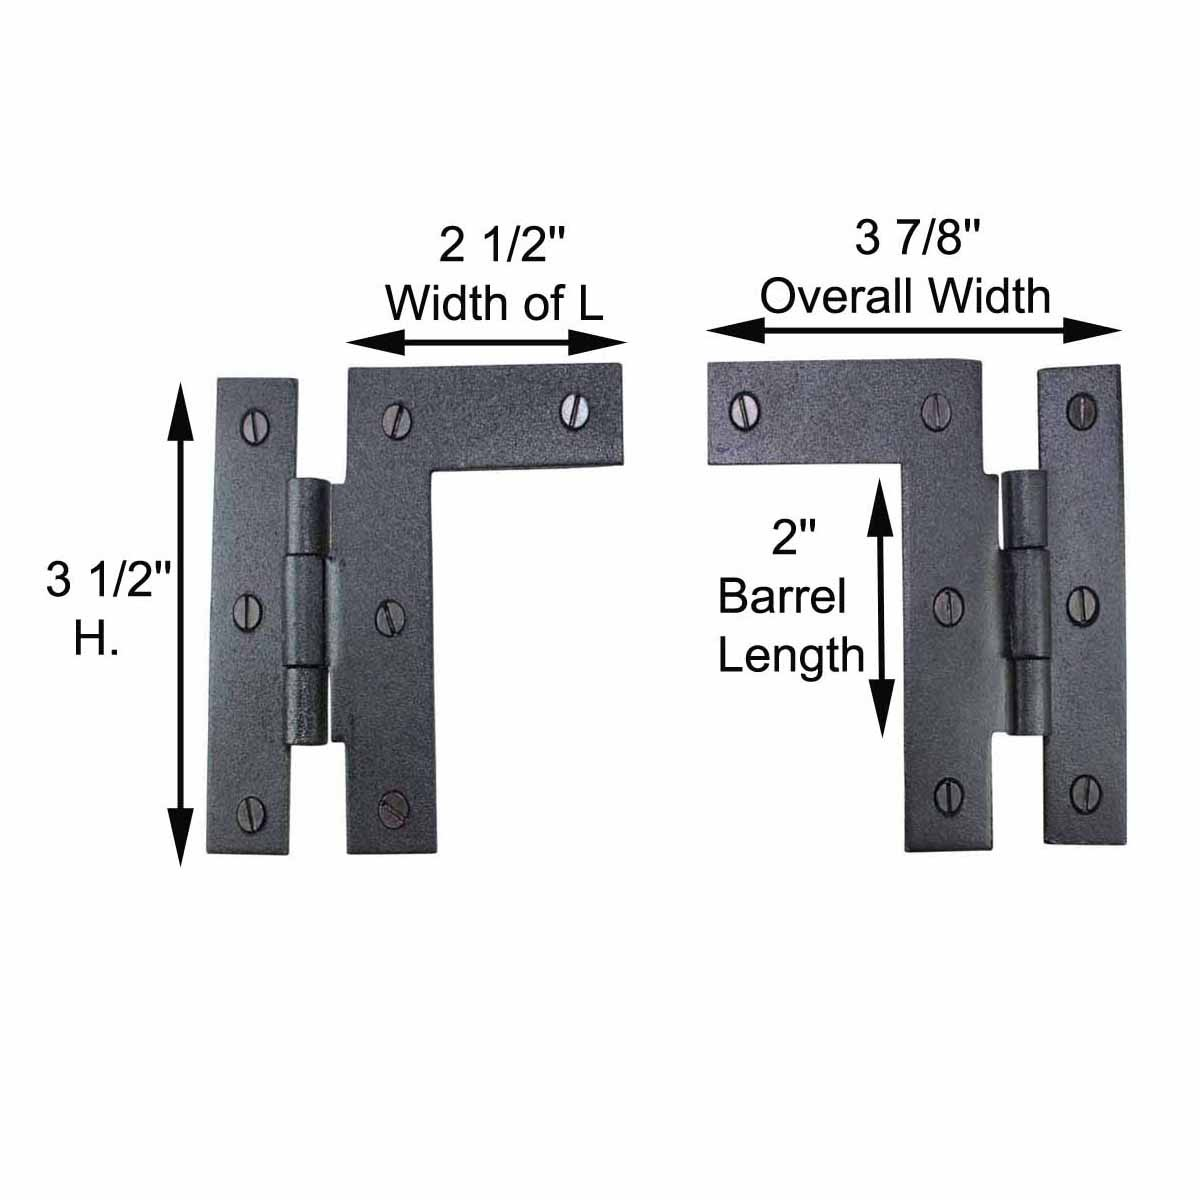 Wrought Iron Cabinet Hinge 3 1/2 Inch H-L Pair Left and ...